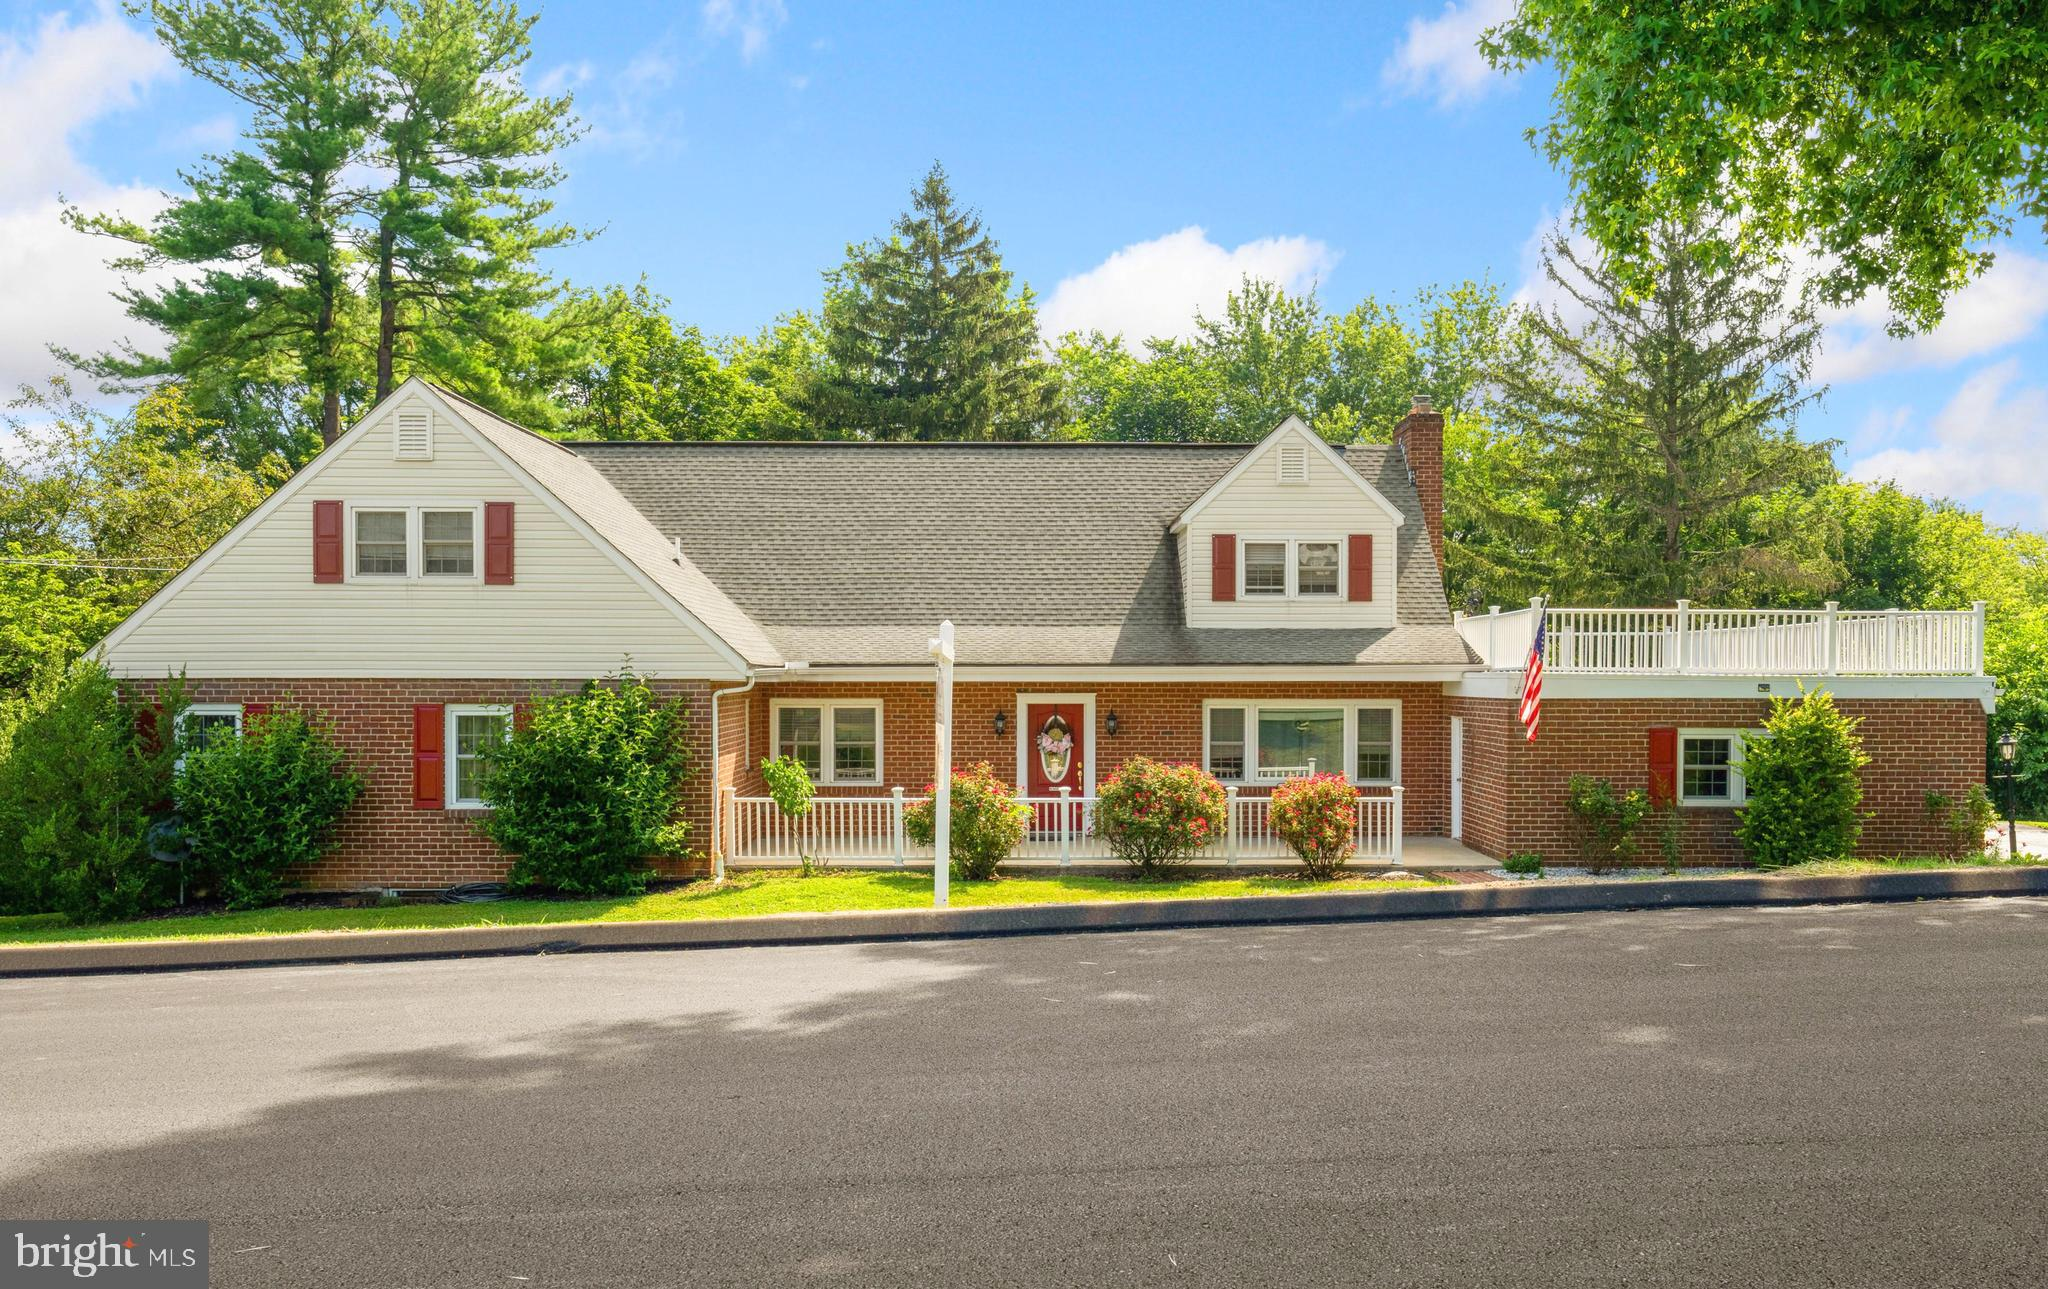 Lovely home, with over 4,000 square feet of living space on a large 0.48-acre lot that features plen